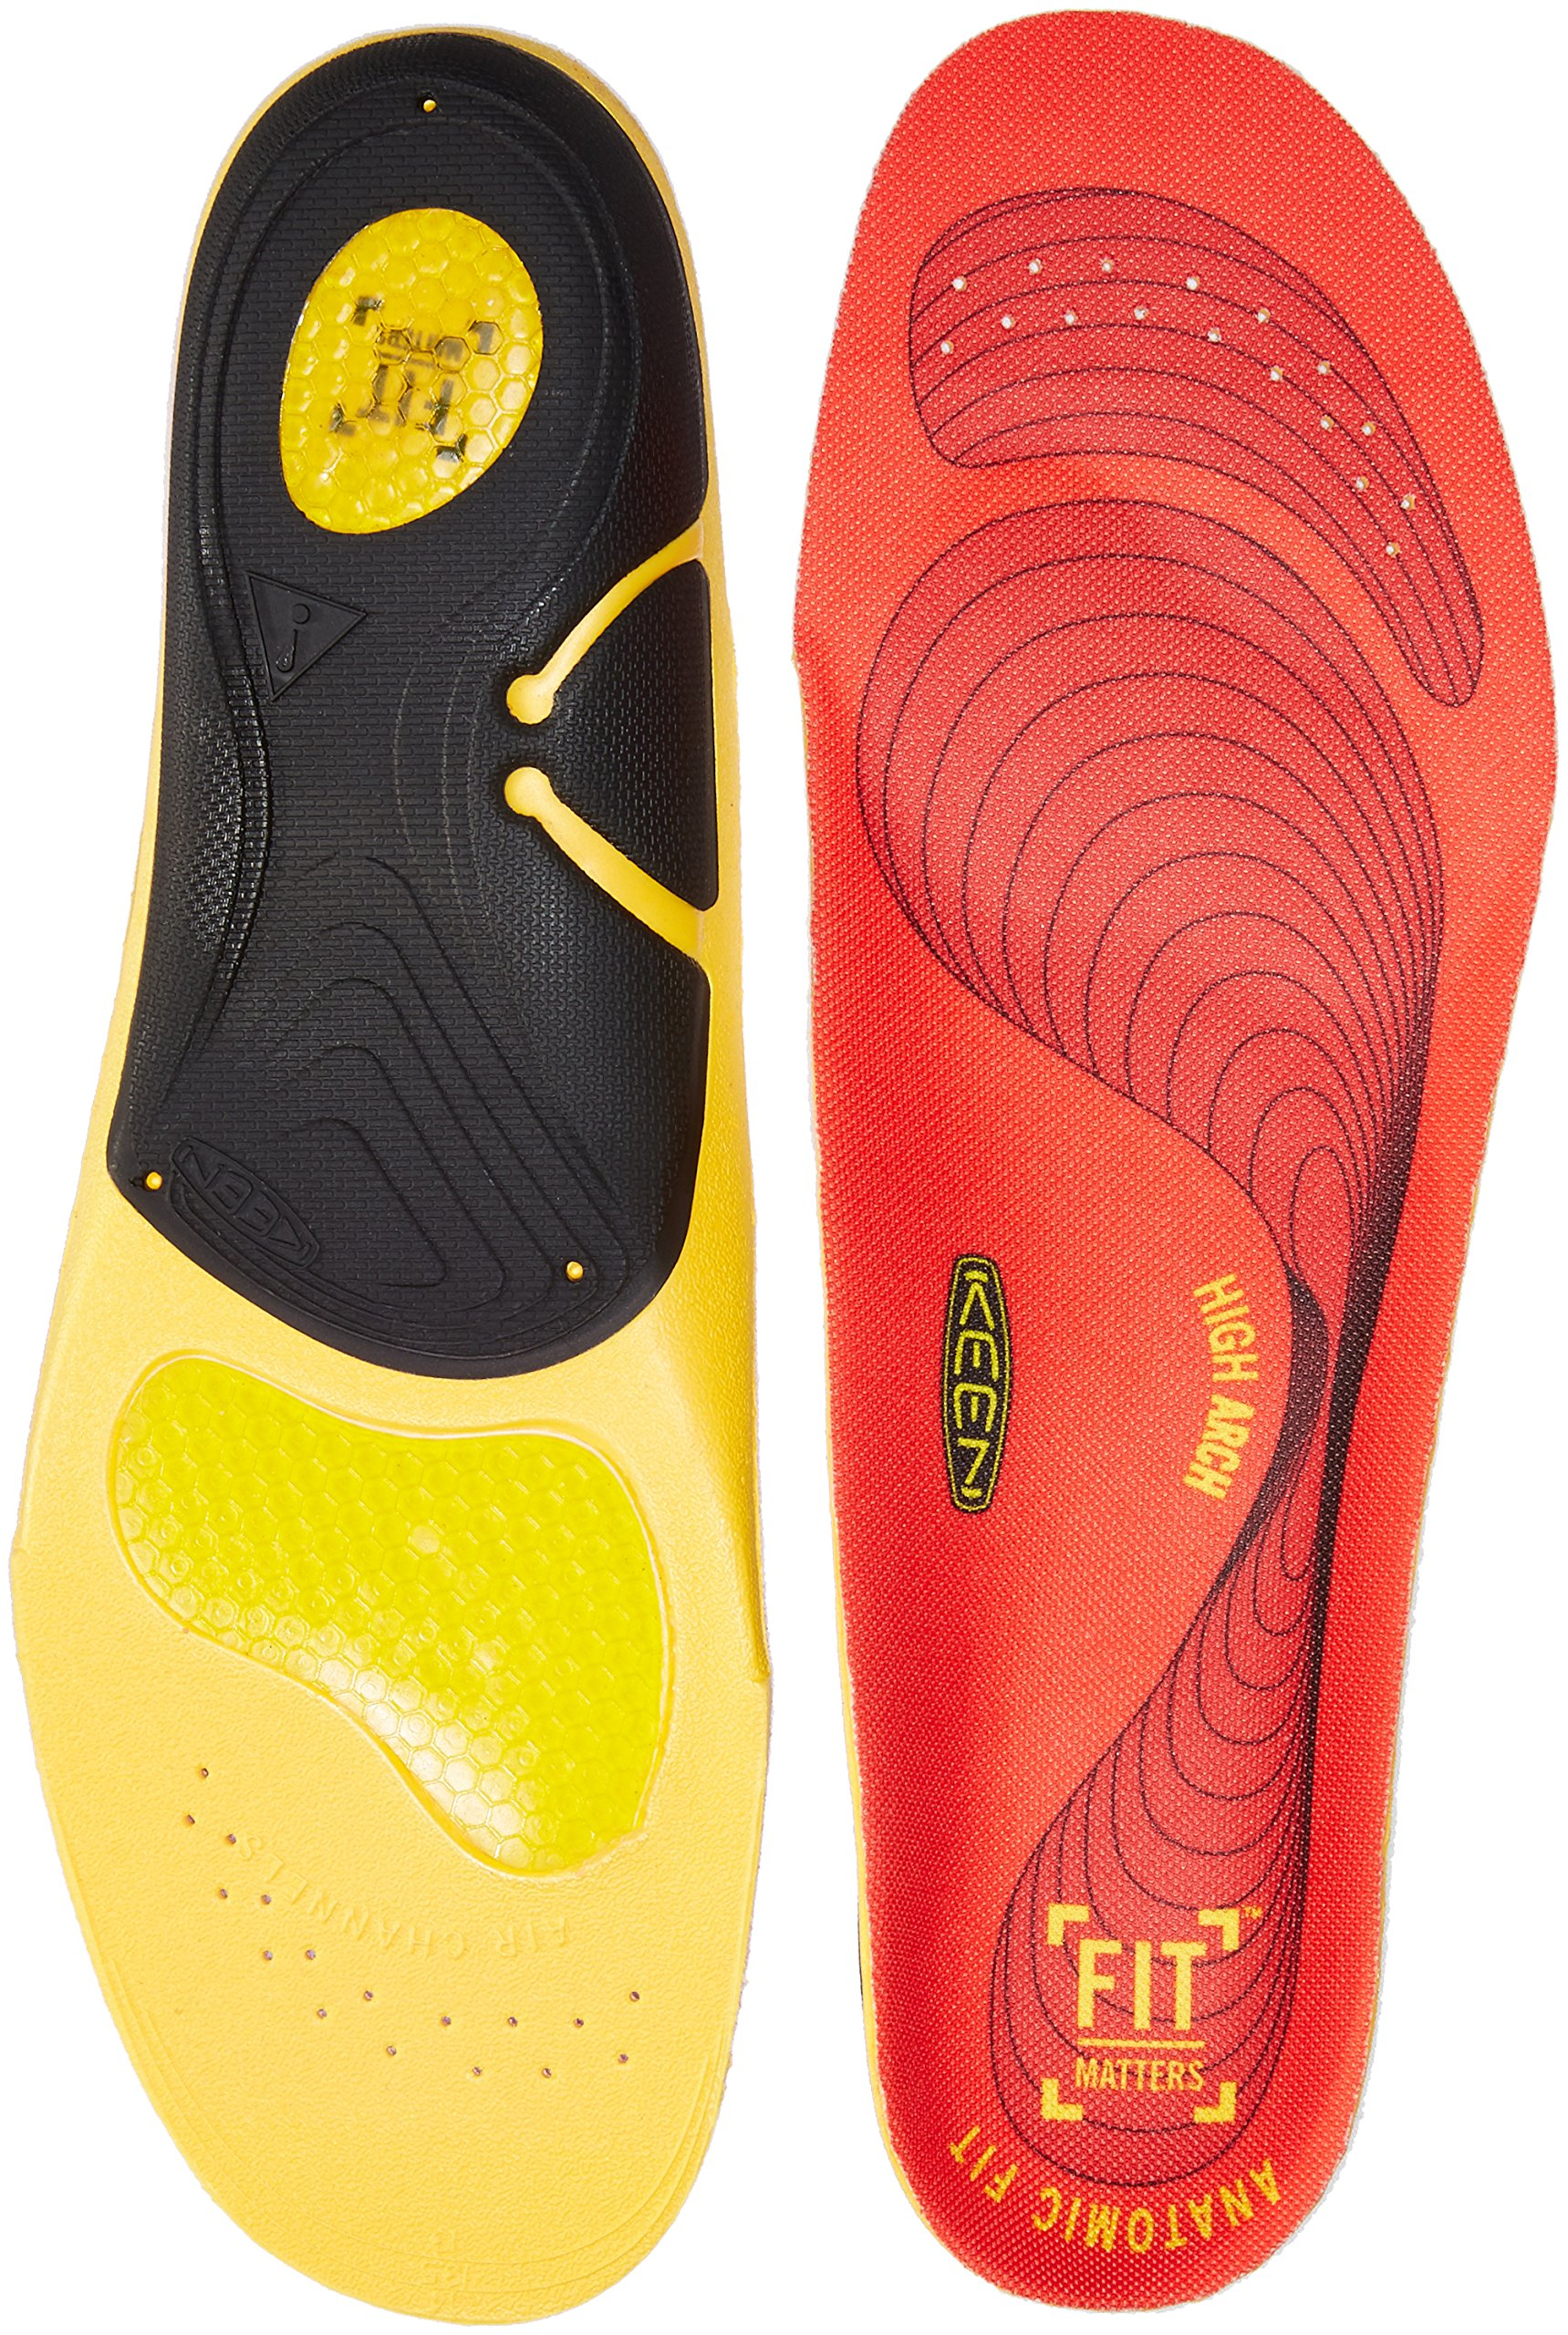 Keen Utility K-30 High Arch Insole,Red,12.5 - 14